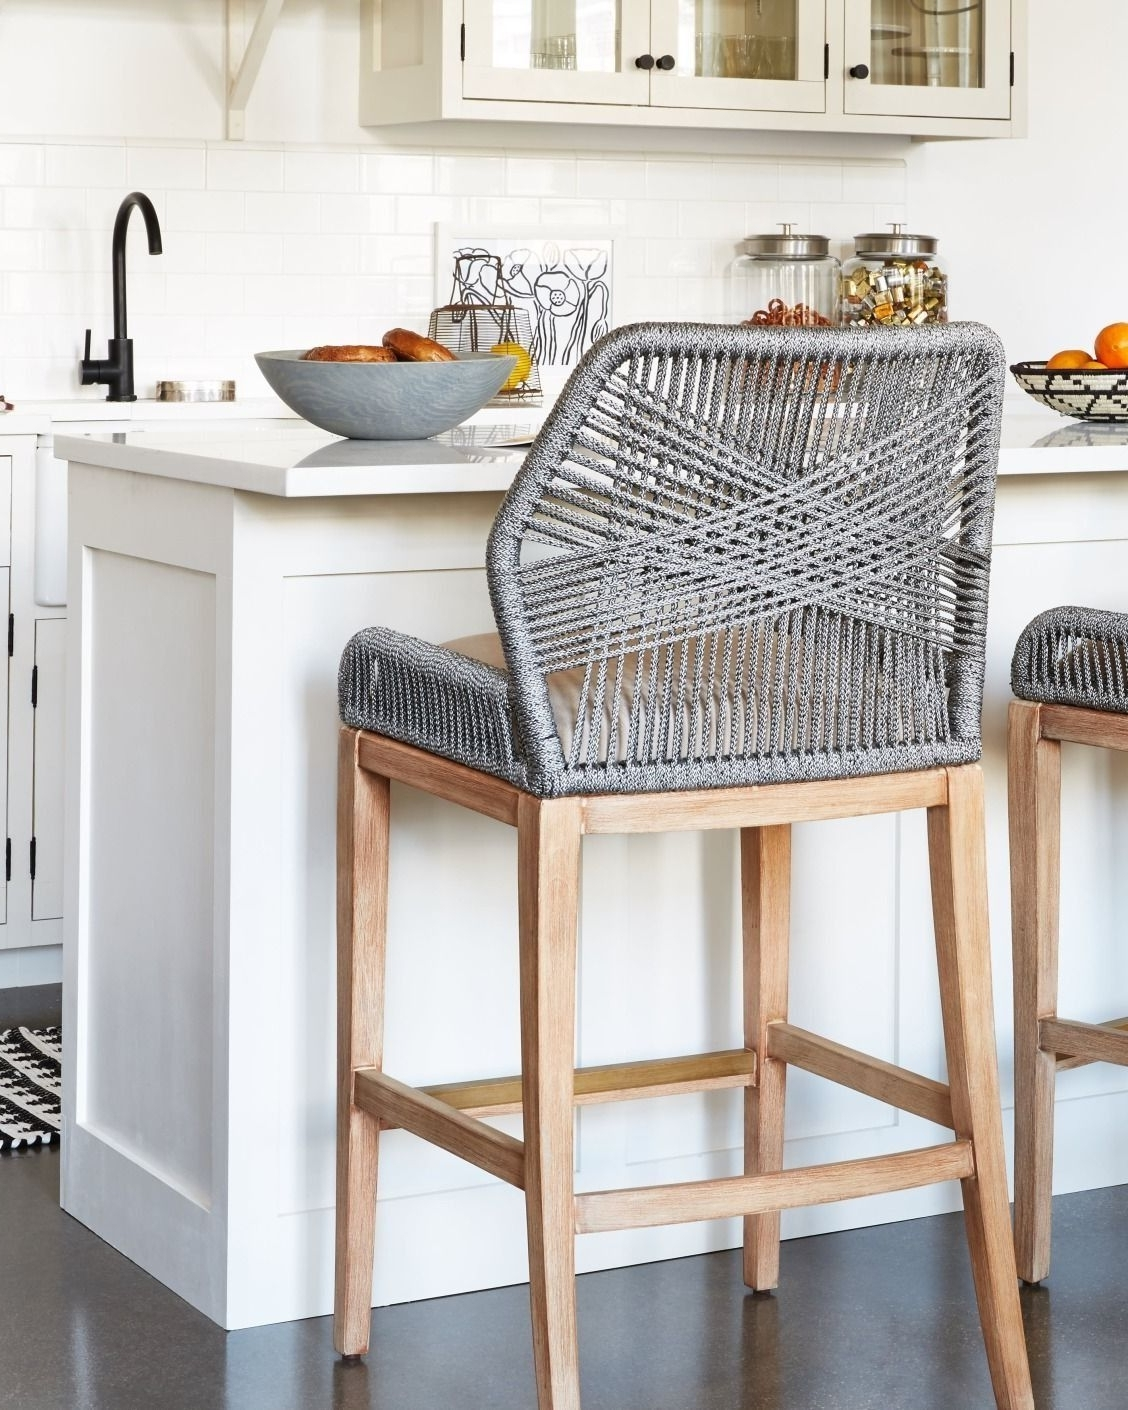 Most Recent These Woven Rope Counter Stools Are Such A Fun, Unexpected Kitchen In Laurent 7 Piece Counter Sets With Wood Counterstools (Gallery 15 of 25)